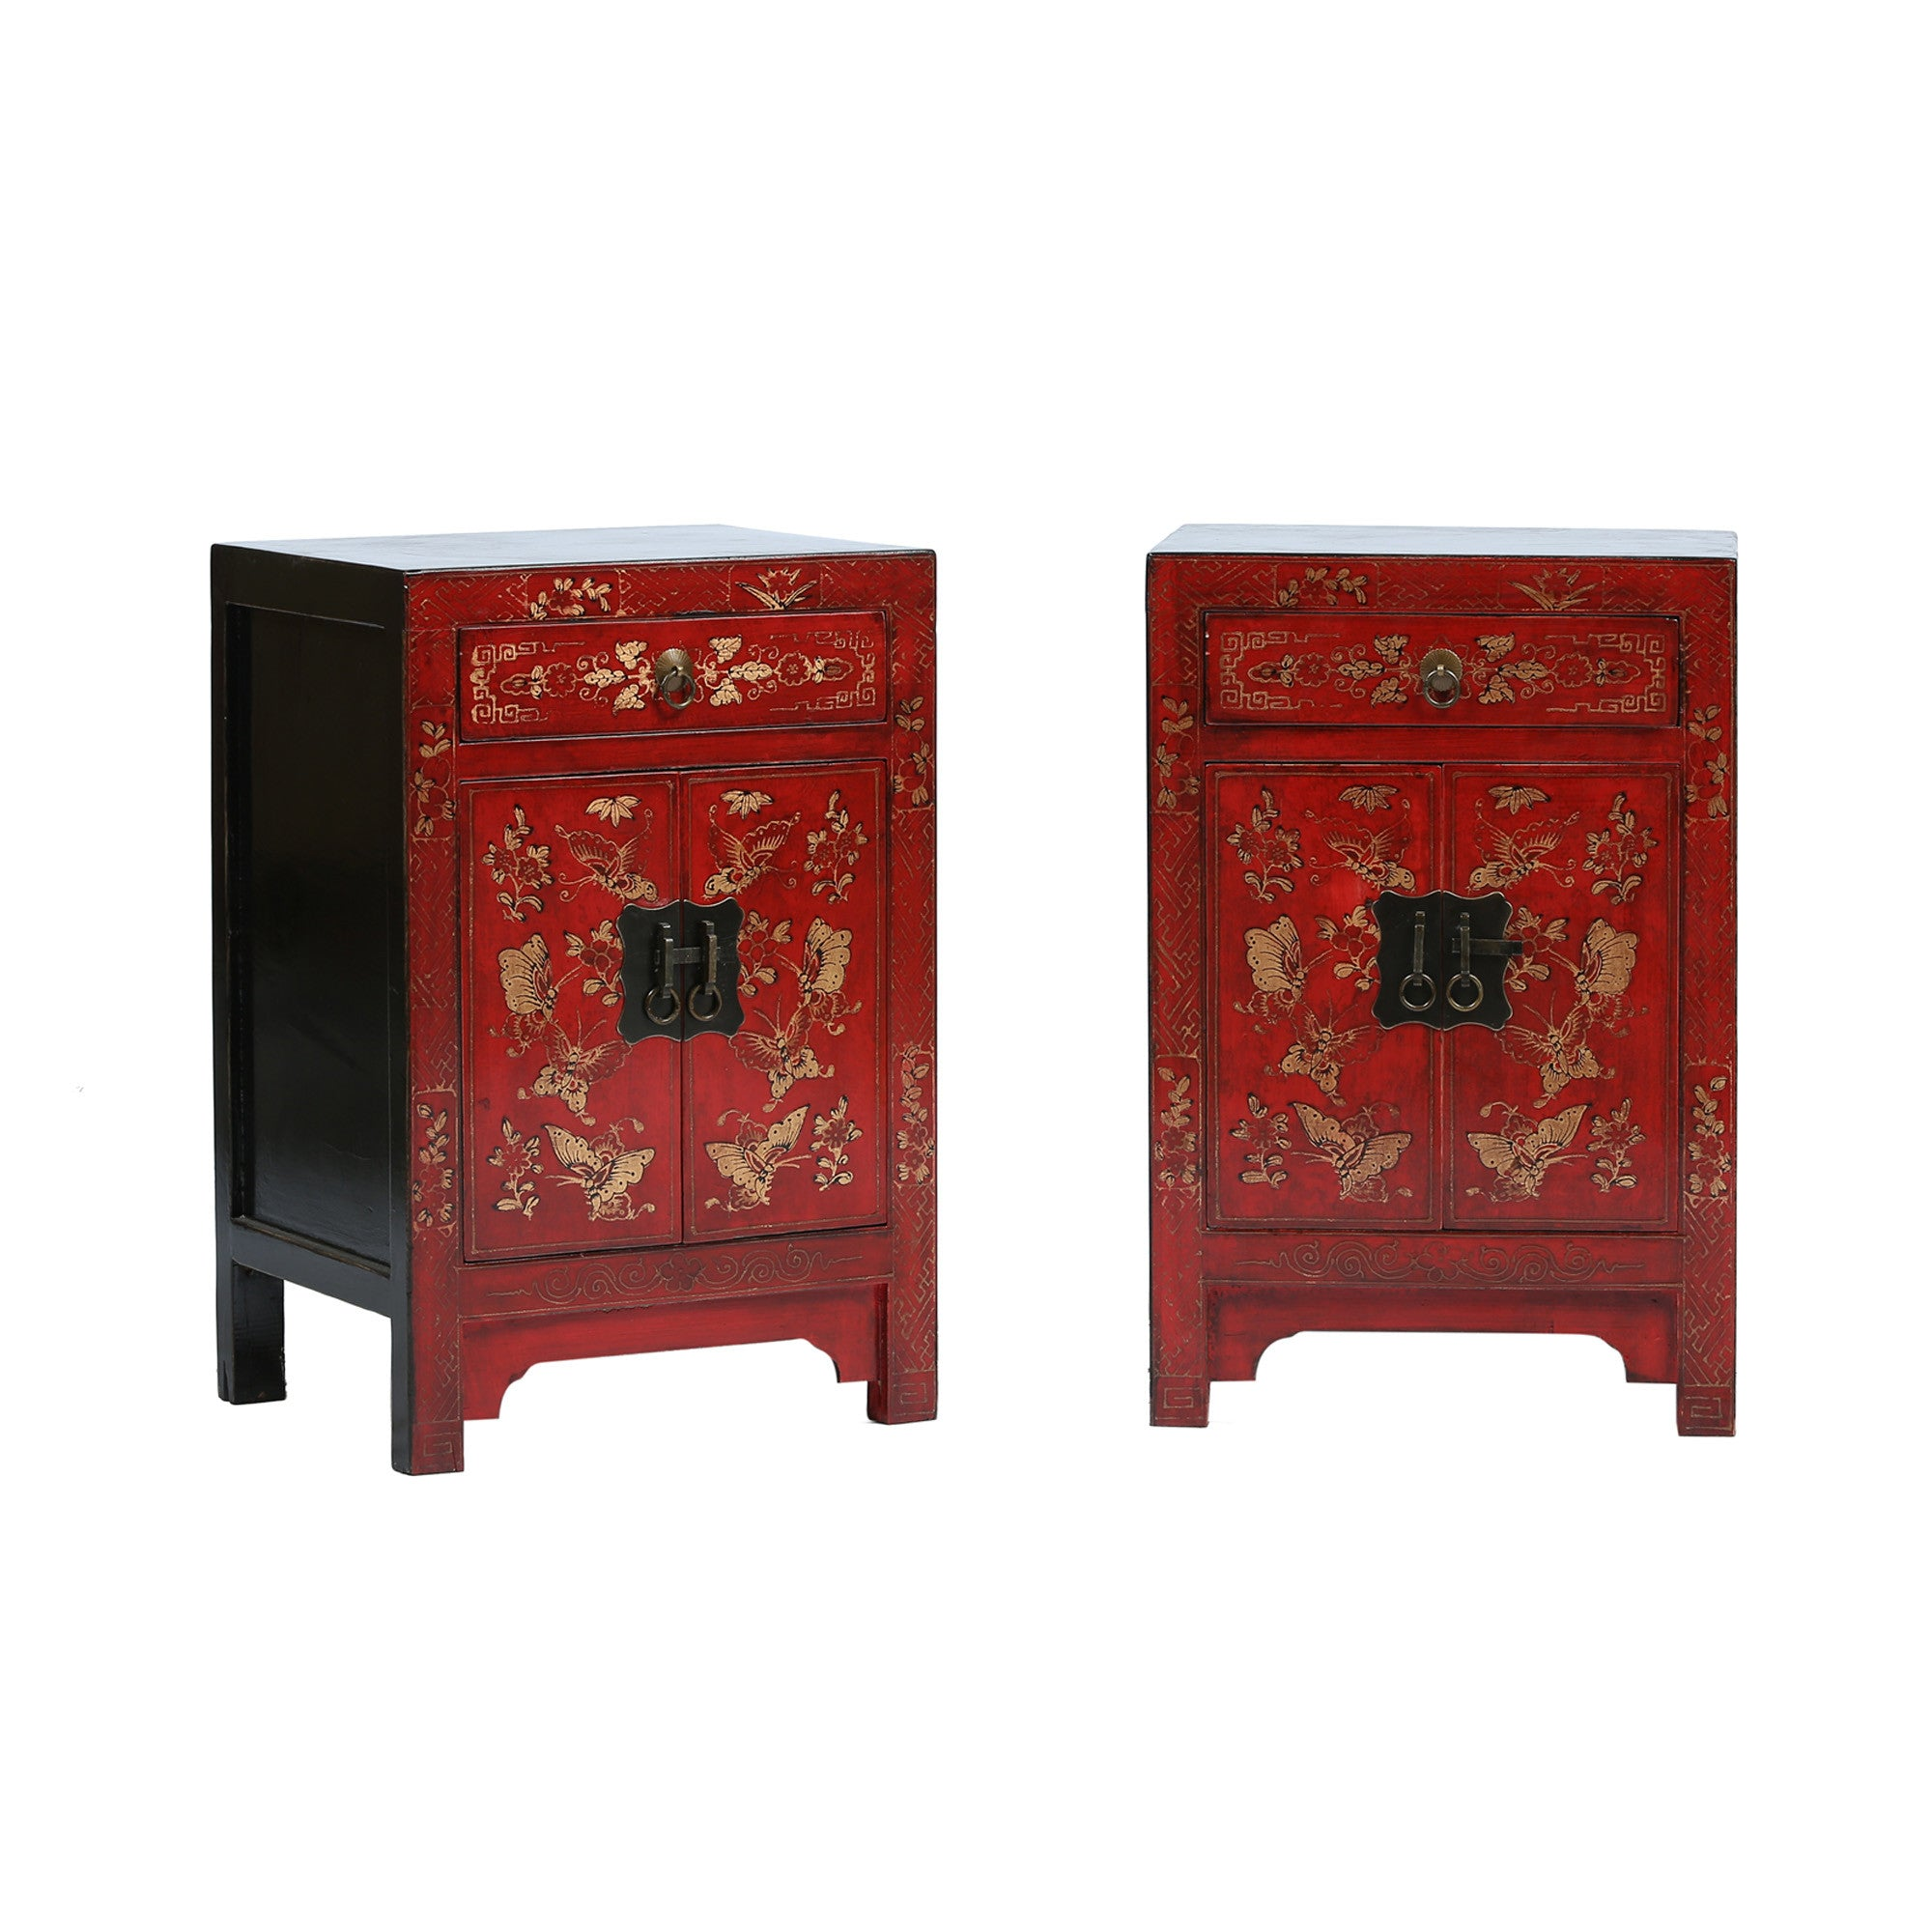 Red Chinese Bedside Cabinet - Butterflies